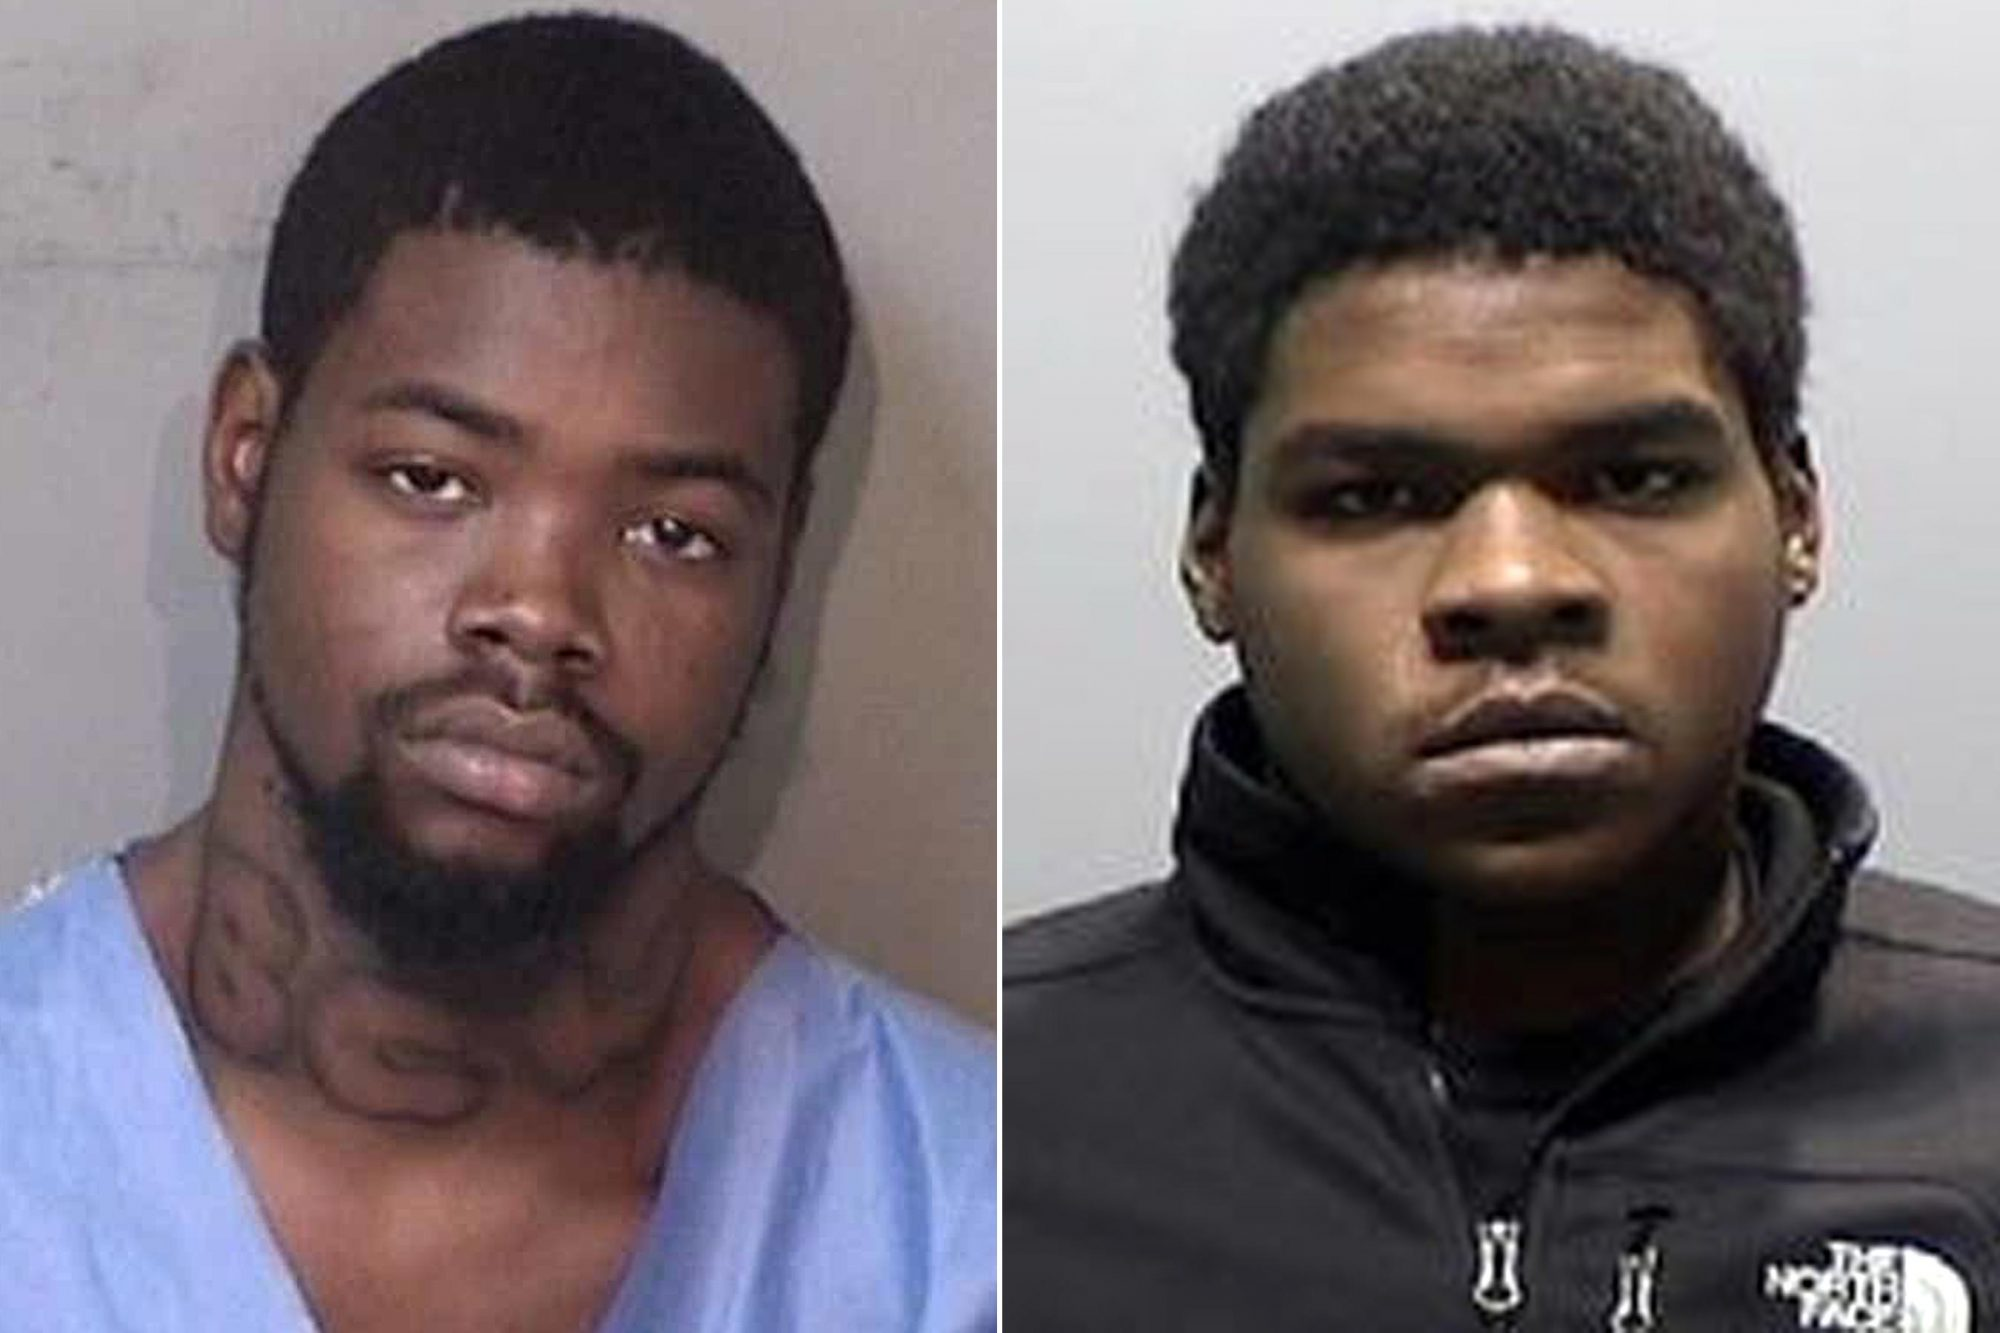 shooting suspects